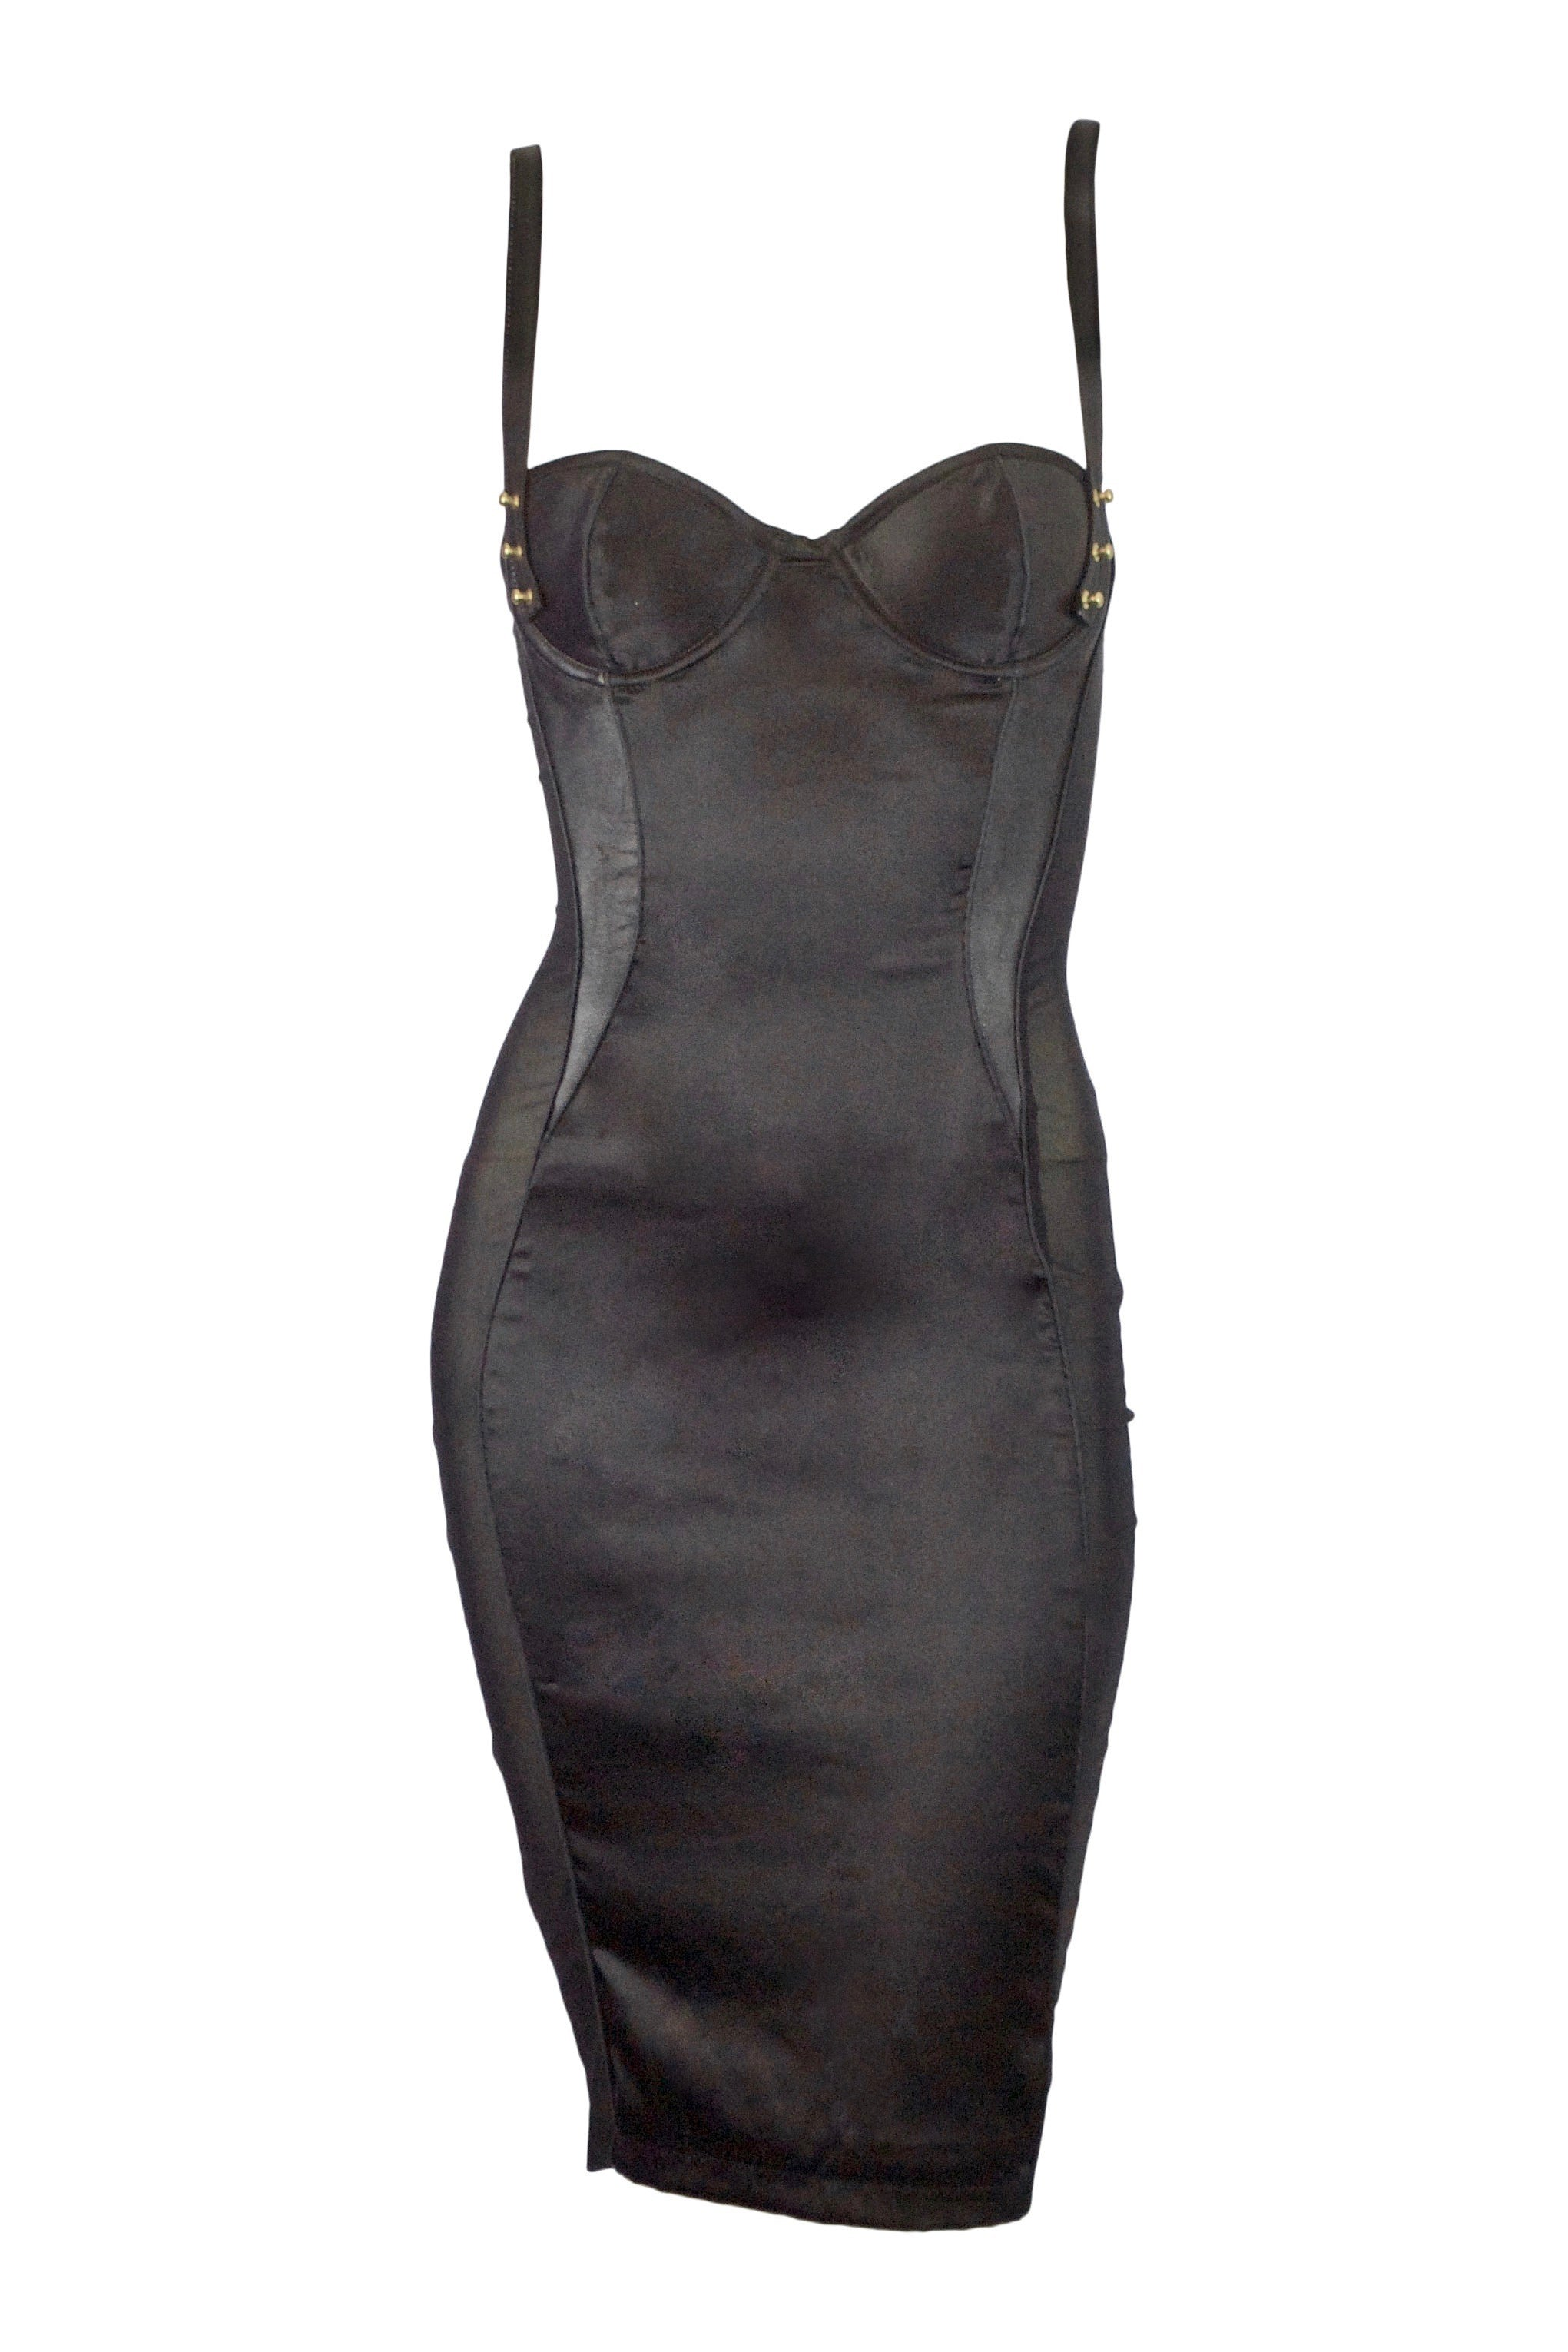 Lola 'n' Leather contour dress - Available to pre-order now